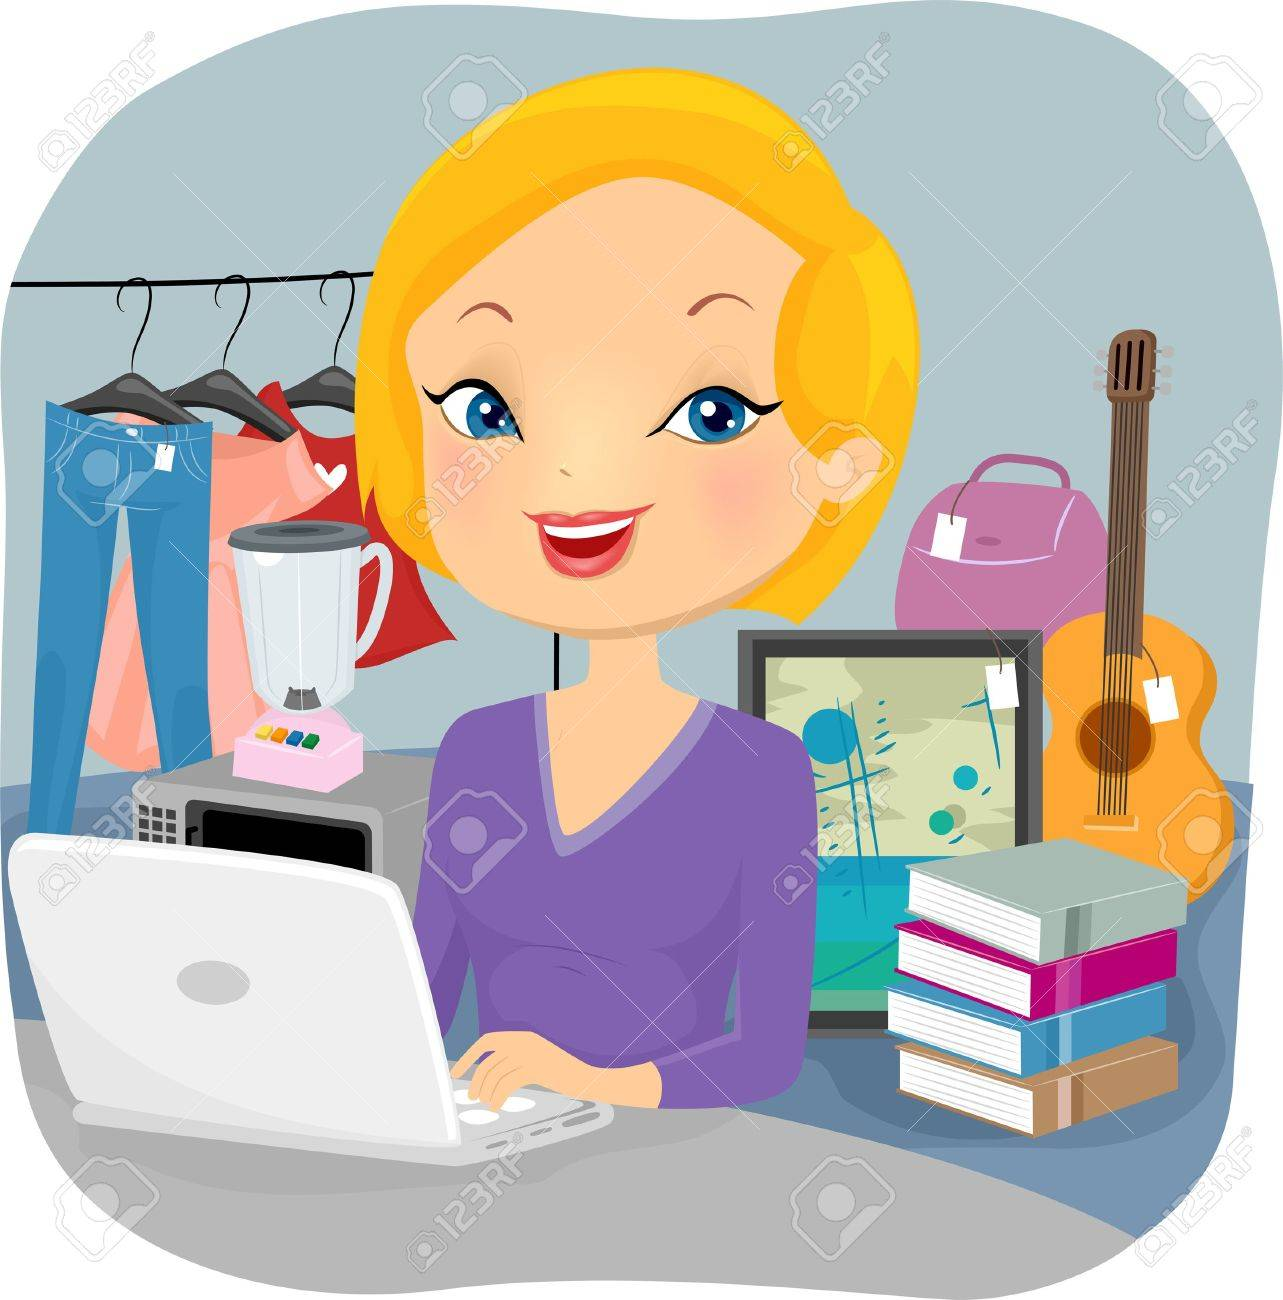 Online business clipart freeuse Online business clipart 4 » Clipart Station freeuse